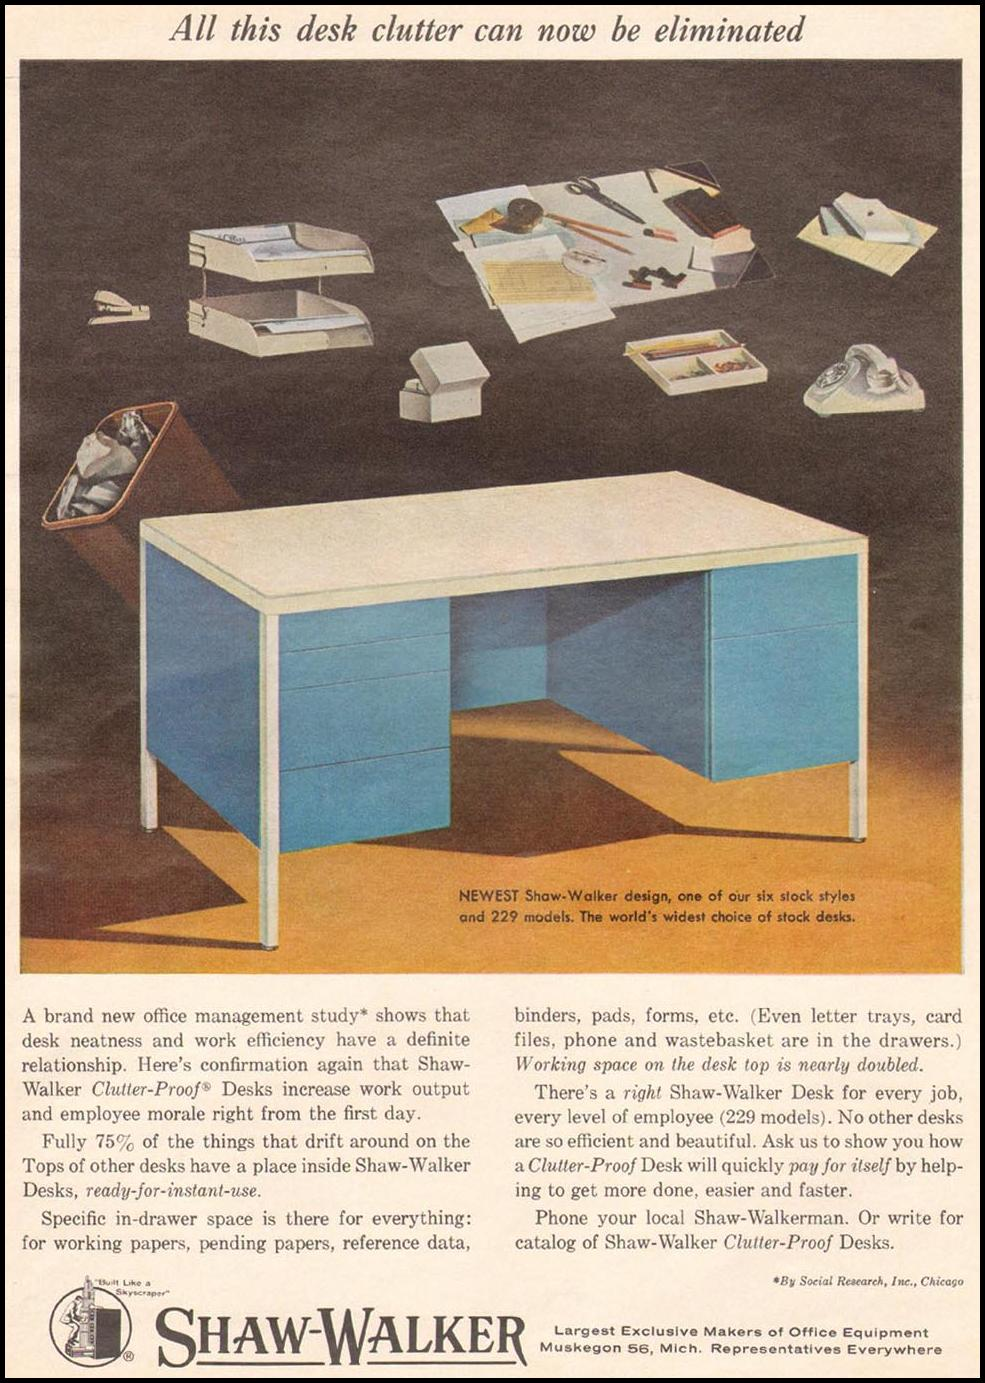 SHAW-WALKER CLUTTER-PROOF DESKS